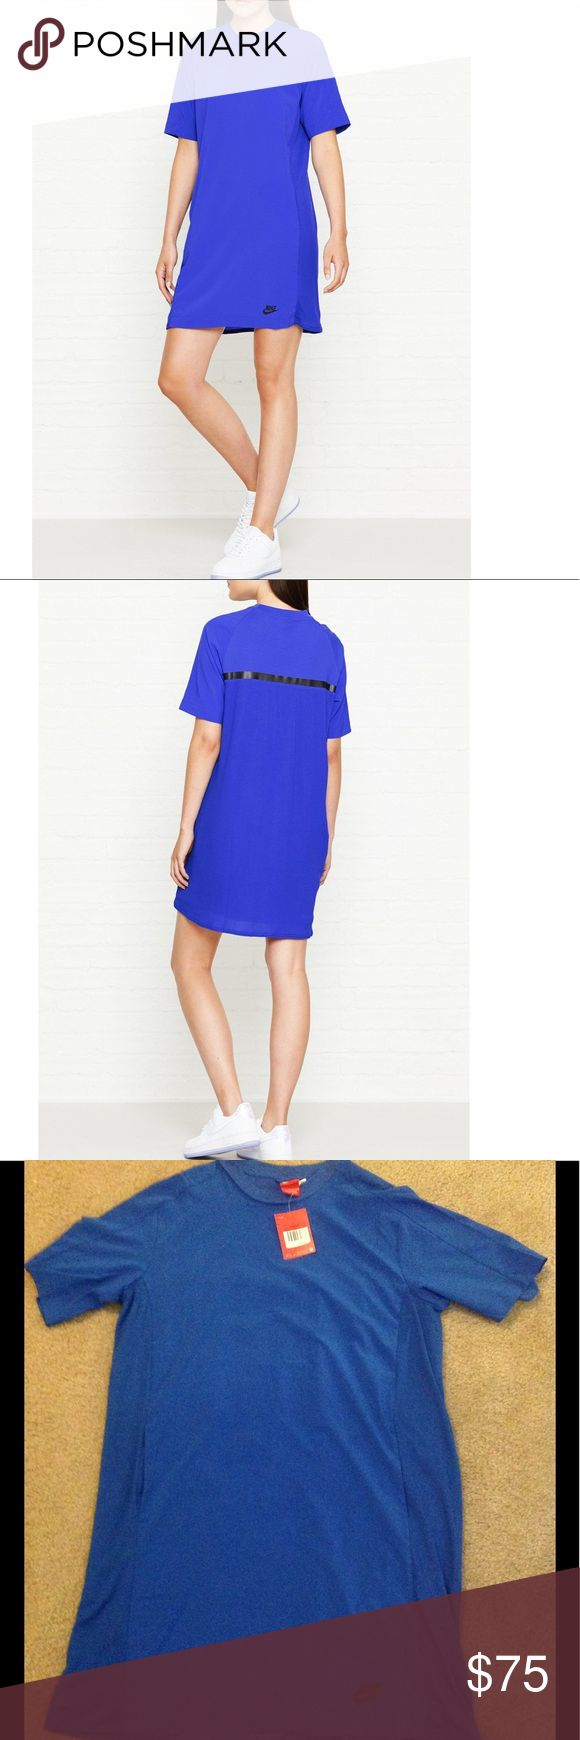 💙💙💙💙Nike Dress💙💙💙💙 💙💙💙💙💙Nike sportswear bonded dress. In a royal blue color with pockets. With a crew neckline and ribbed flowing back. It hits right above the knee. Made from 88% polyester and 12% spandex. With a 100% cotton lining.💙💙💙💙 Nike Dresses